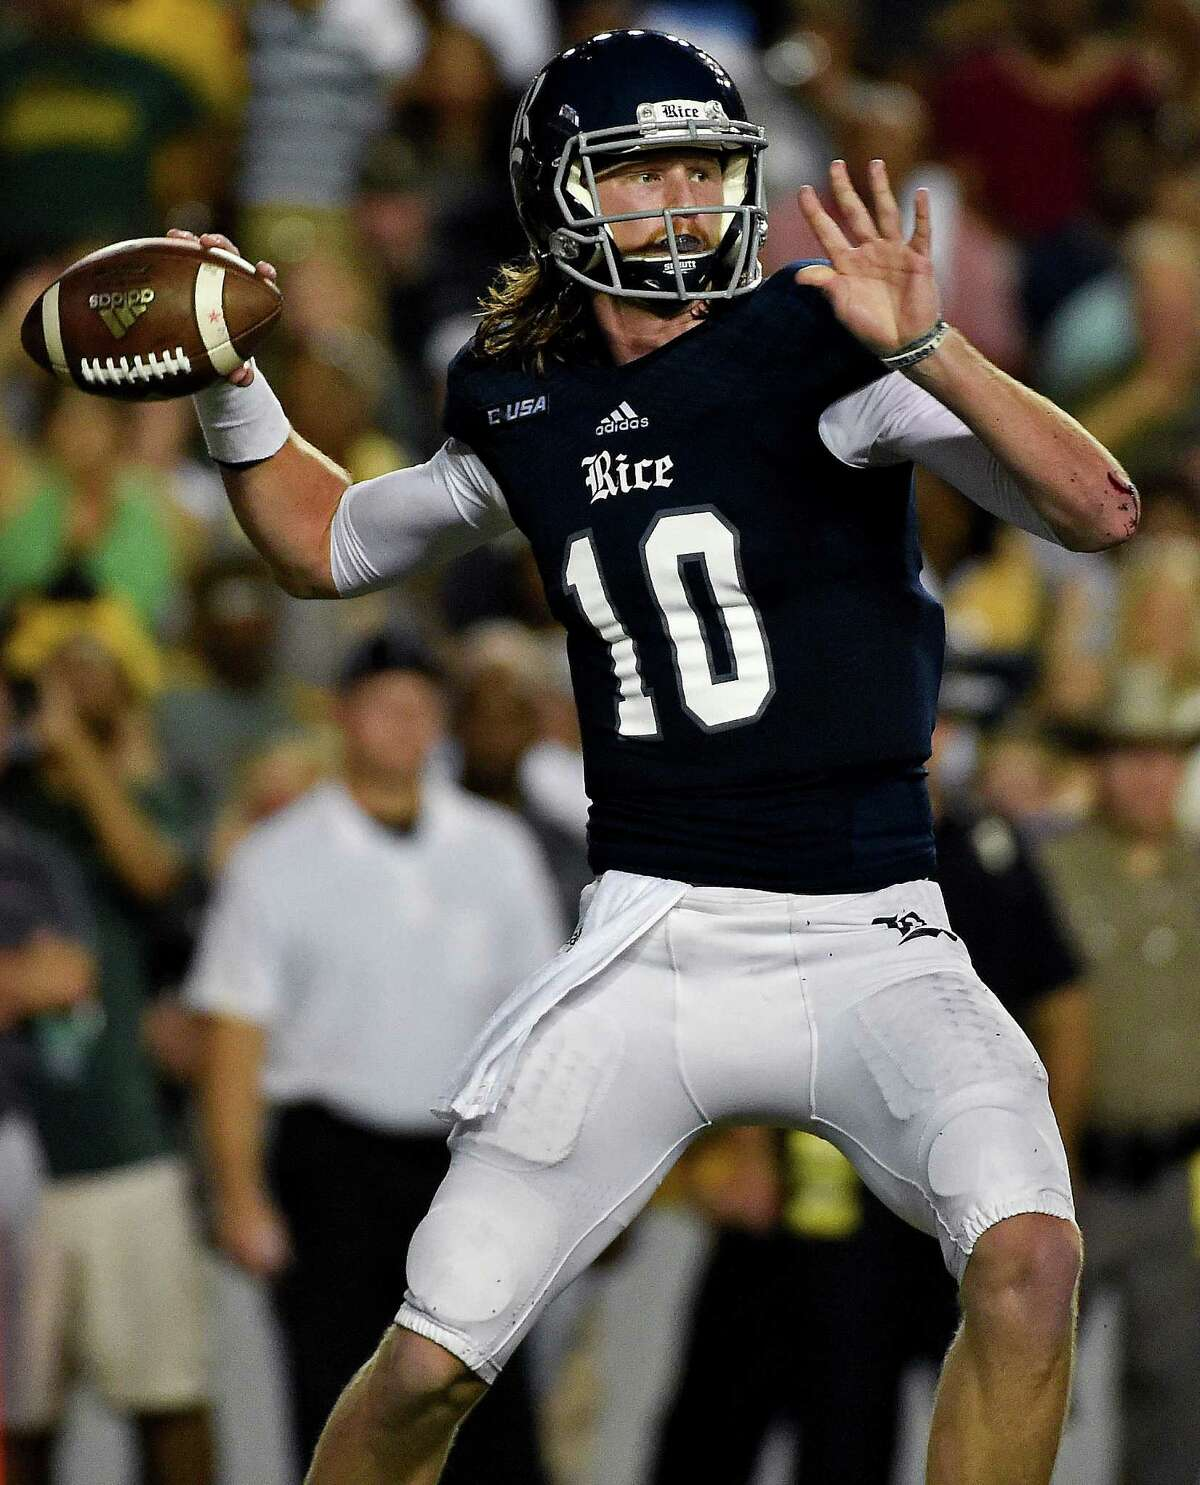 Rice quarterback Tyler Stehling throws a pass in the first half of an NCAA college football game against Baylor, Friday, Sept. 16, 2016, in Houston. (AP Photo/Eric Christian Smith)